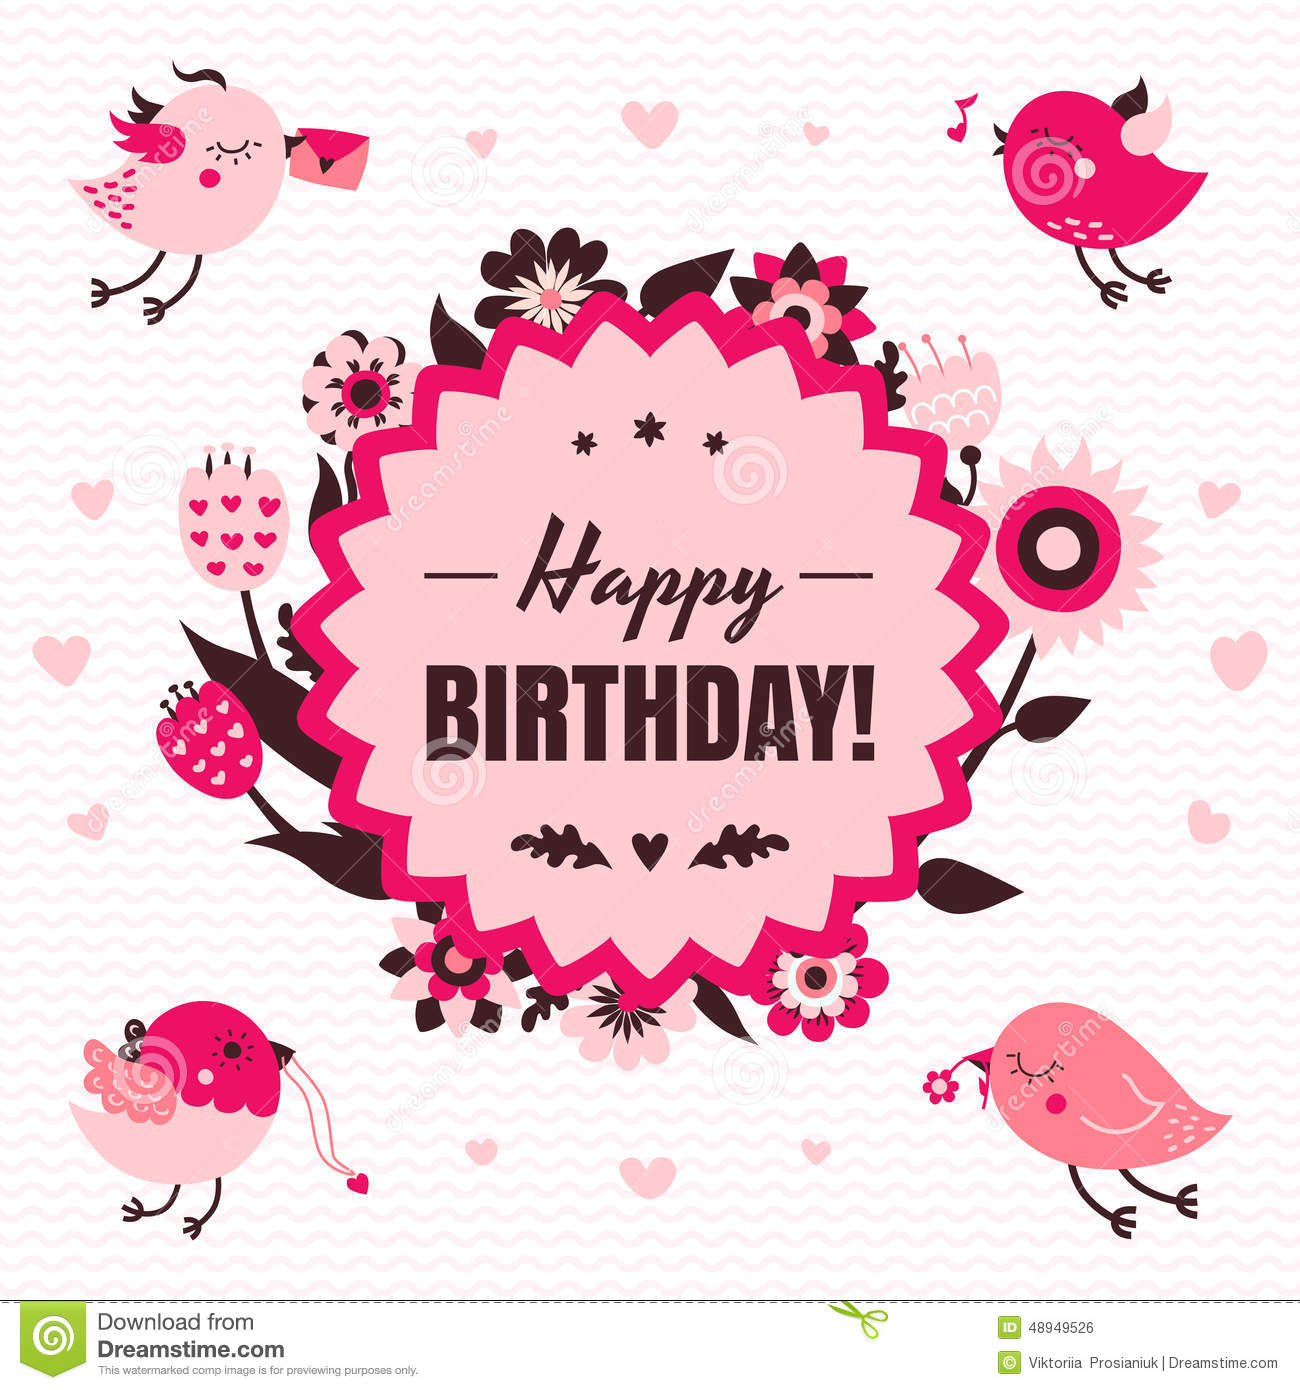 Happy Birthday Vector Card In Light And Dark Pink And Brown Colors